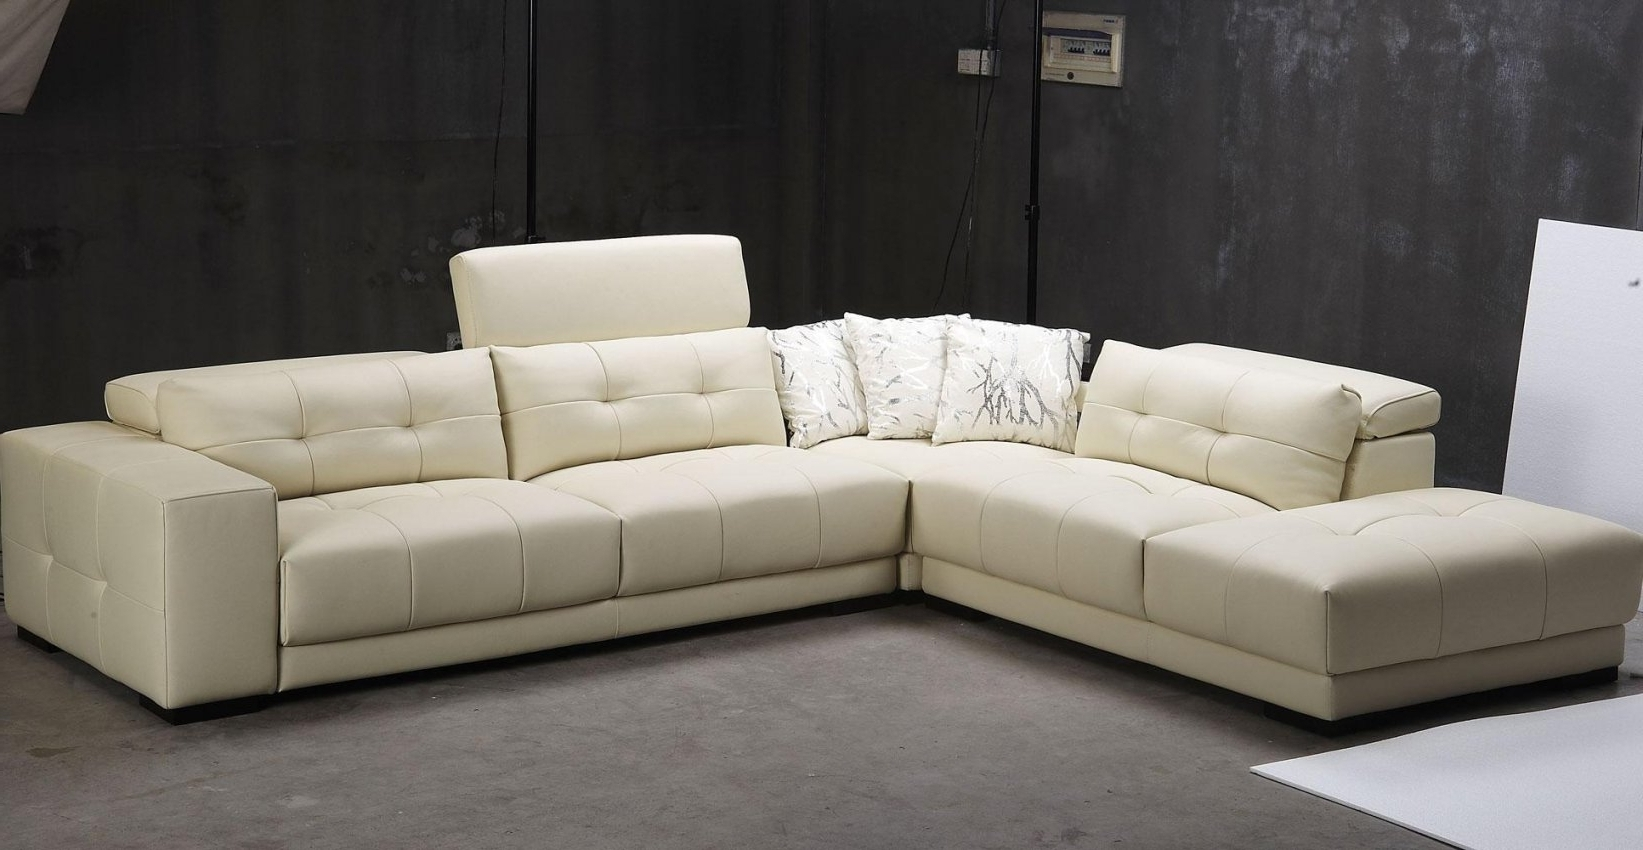 3 Piece Sectional Sleeper Sofas For Fashionable Sofa : Best Modern 3 Piece White Leather Sectional Sleeper Sofa (Gallery 8 of 20)